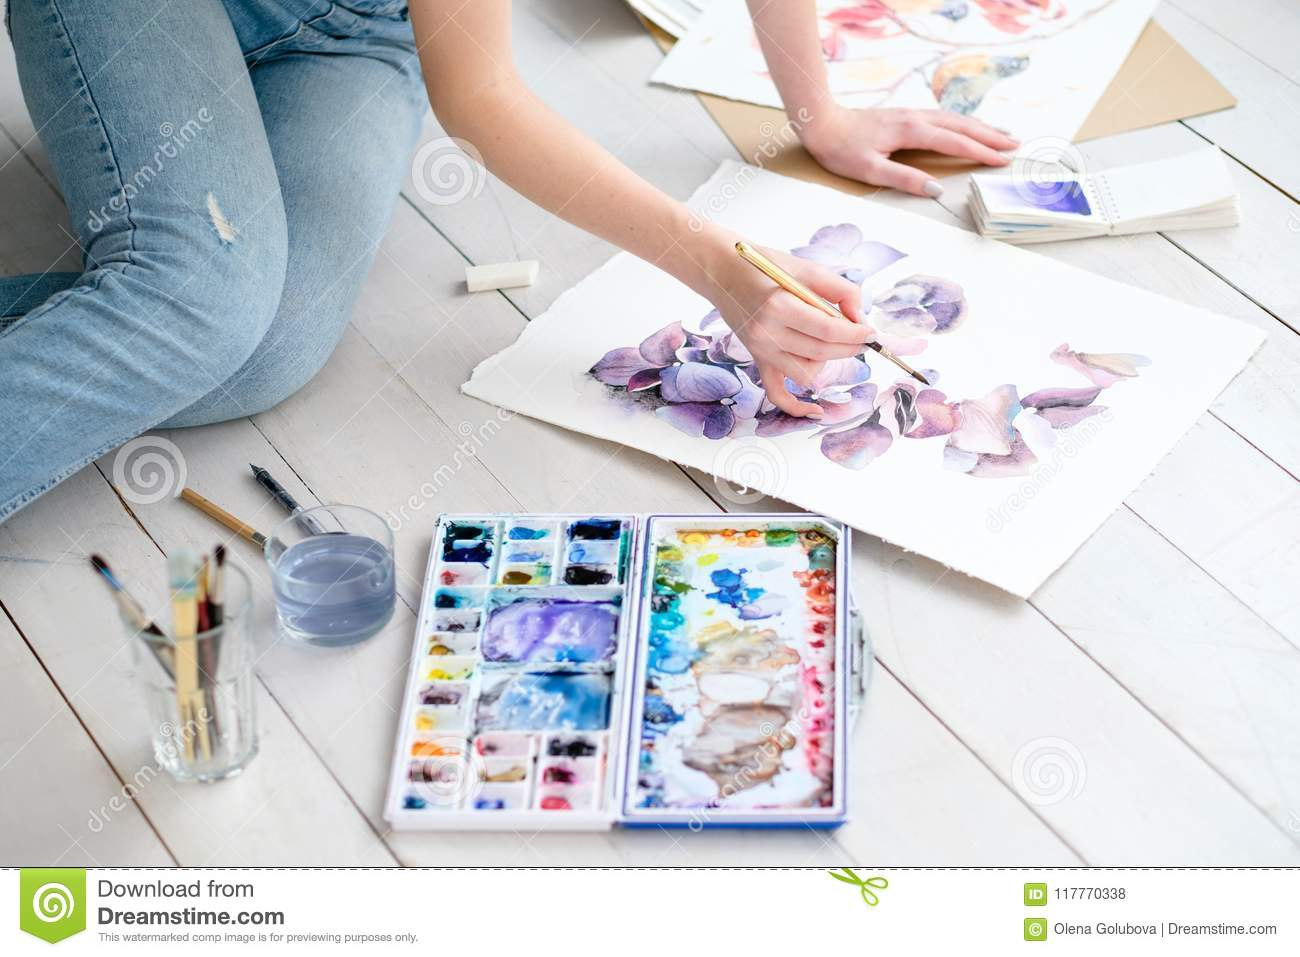 Draw Skill Artful Paint Leisure Watercolor Picture Stock Photo Image Of Artist Expression 117770338